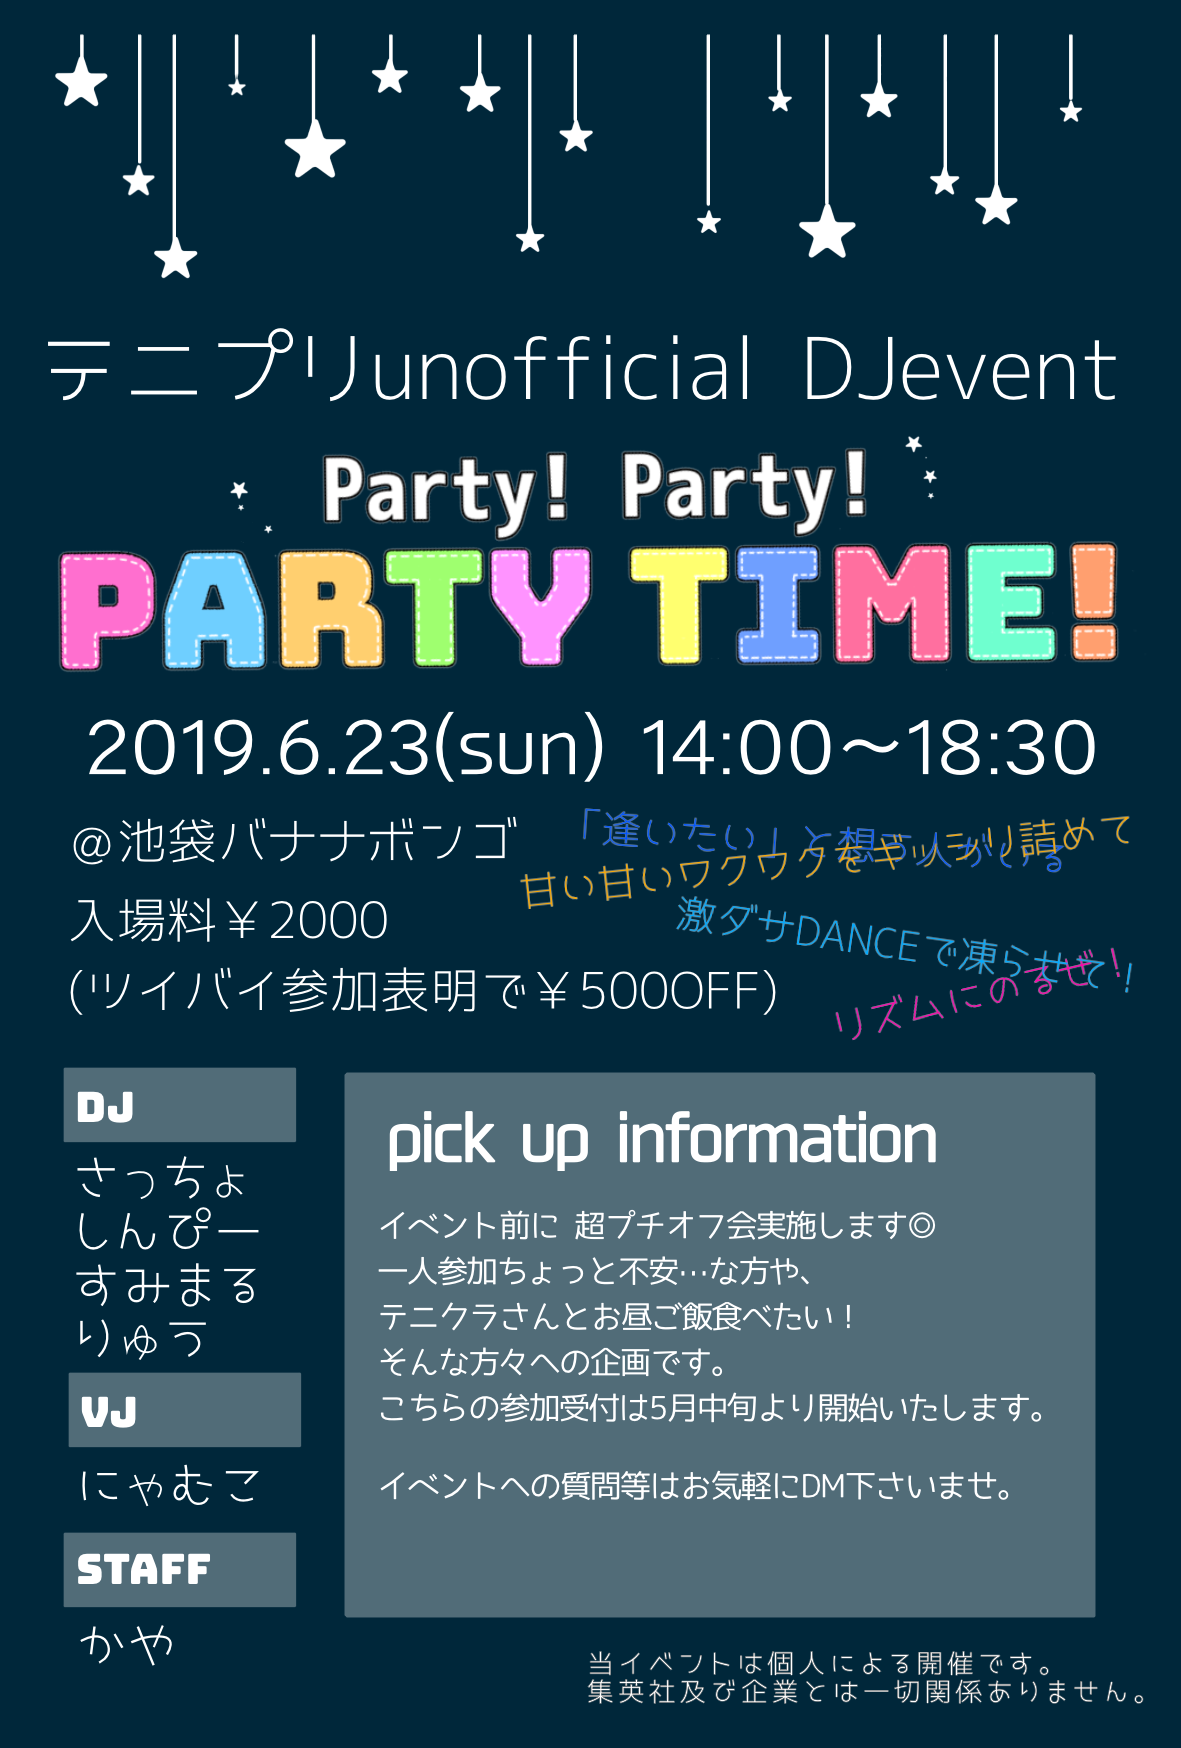 【DJイベント情報】Party!Party!PARTY TIME!【6/23(日)14:00~】フライヤー